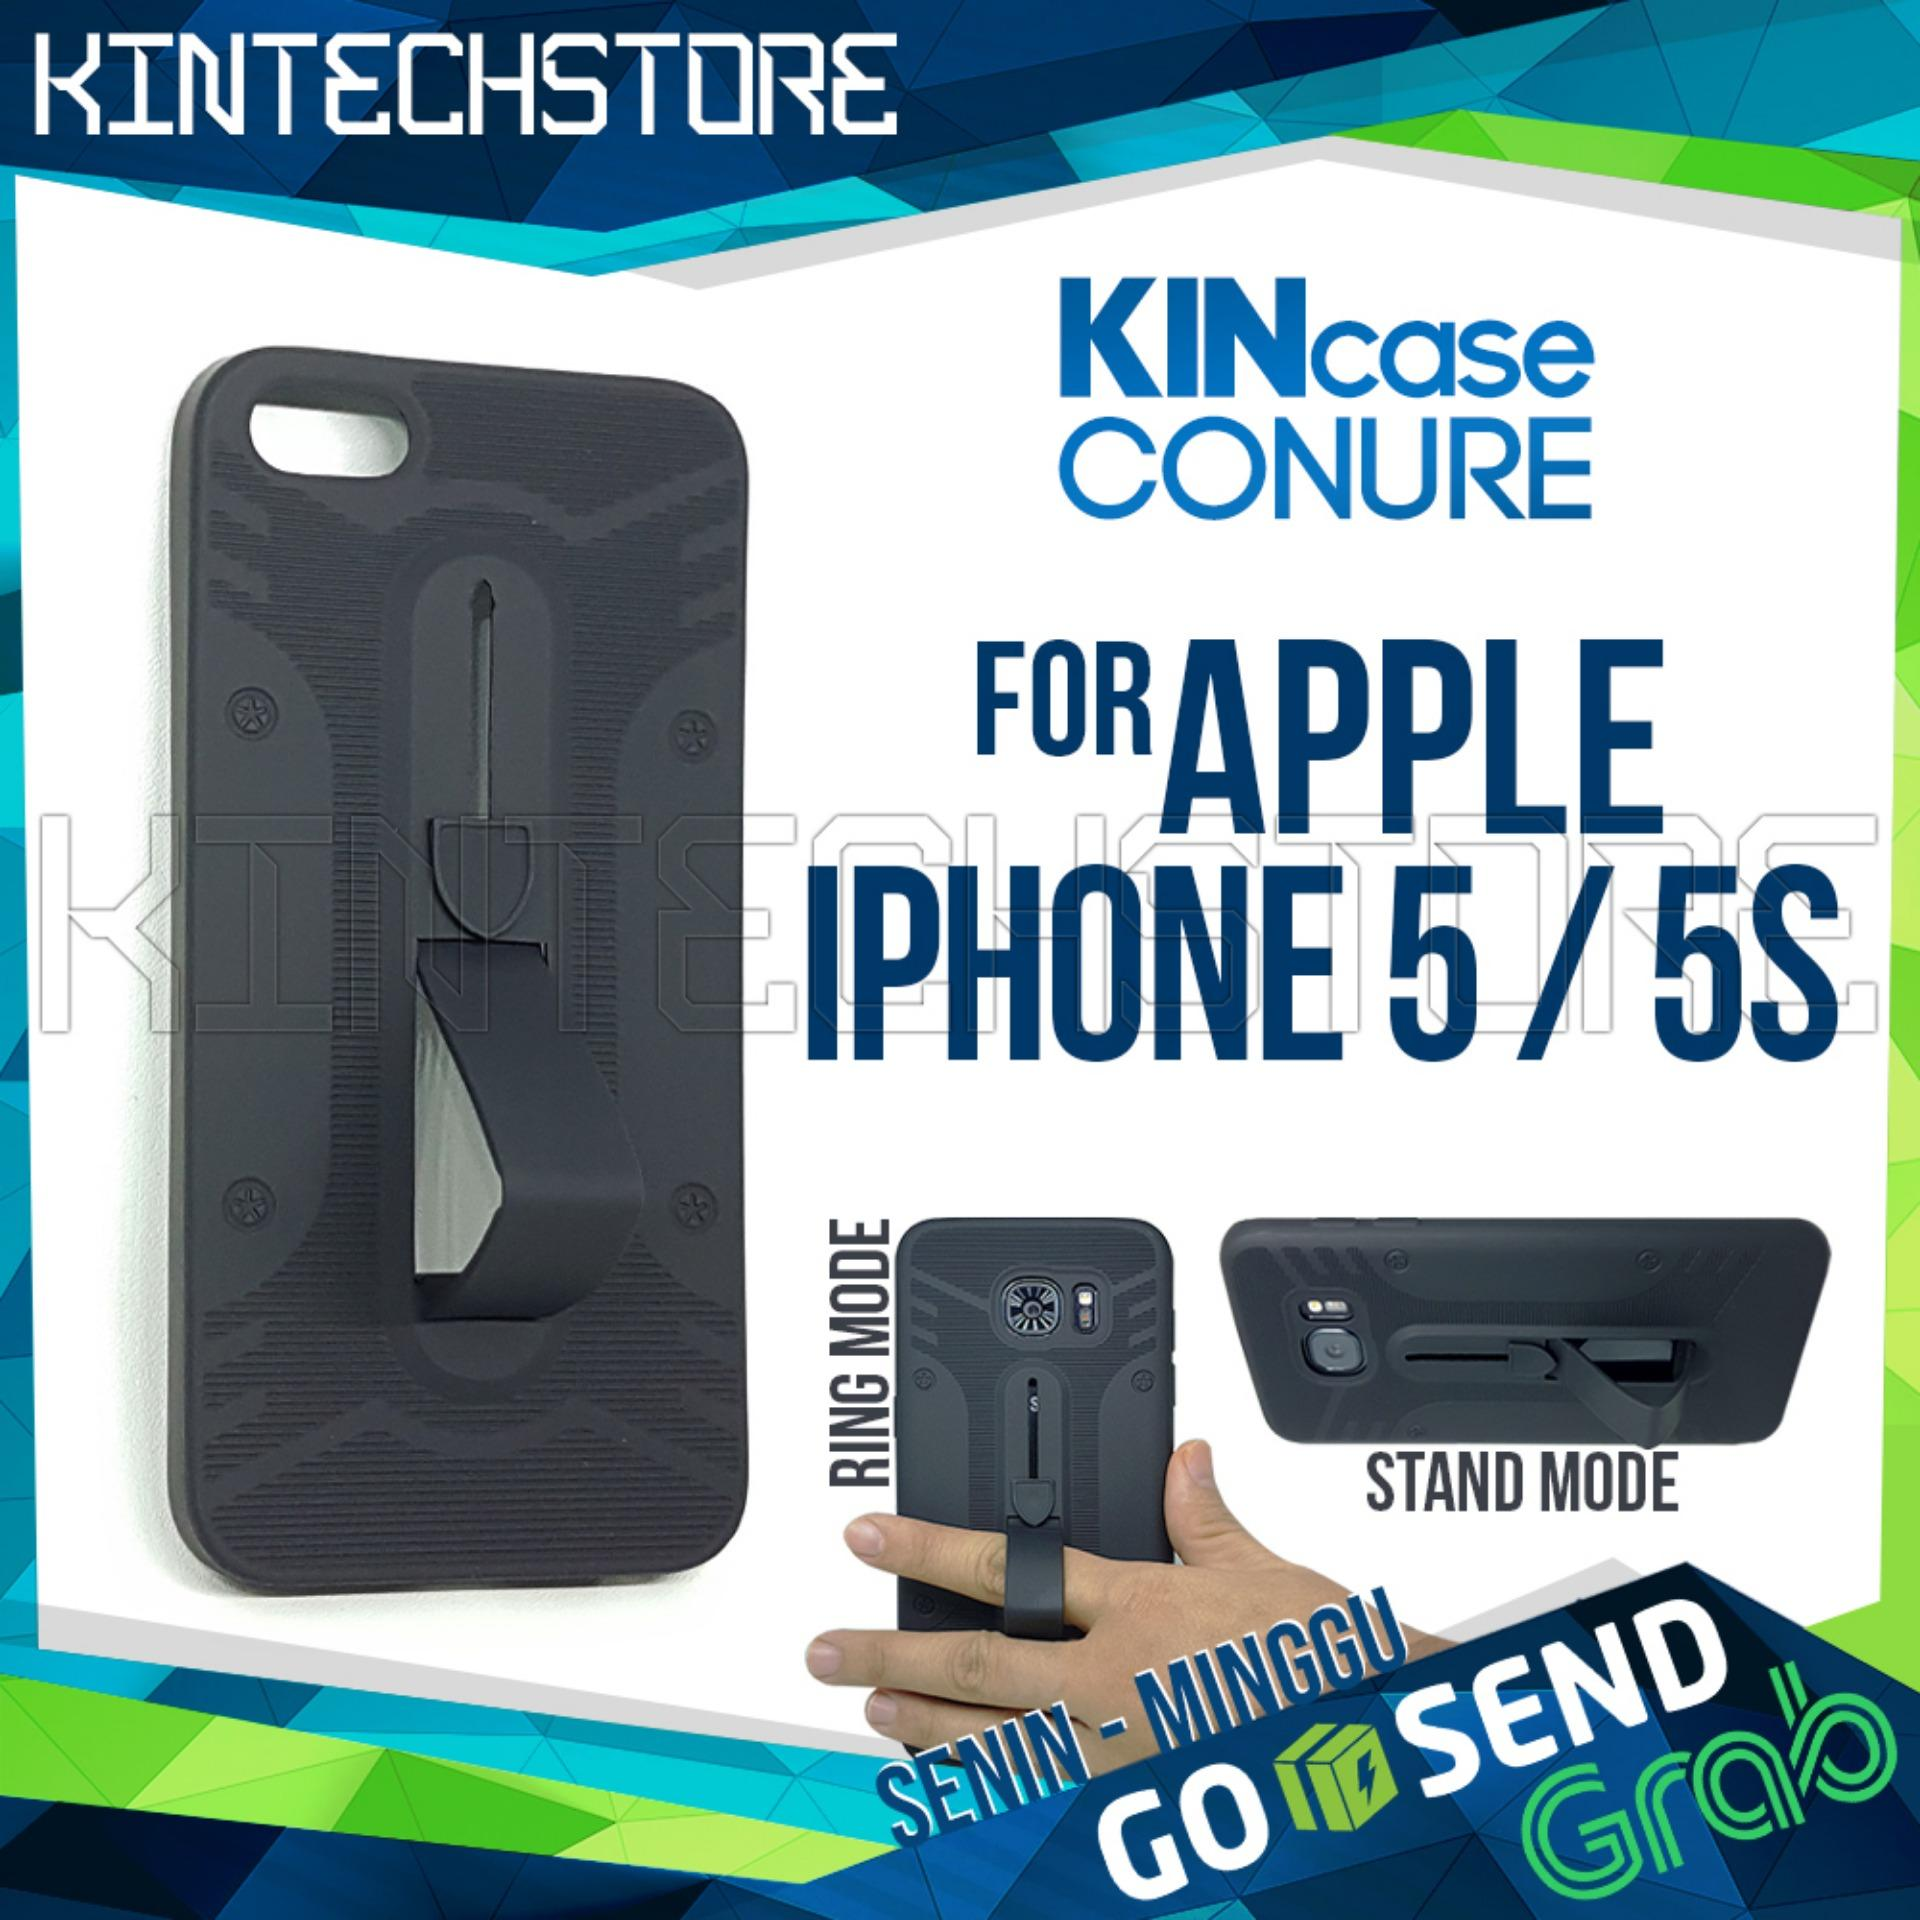 Case Iphone 5 Conure 3in1 Smart Grip COCOSE IPAKY Drop resistance anti Shock Silicone Cover -